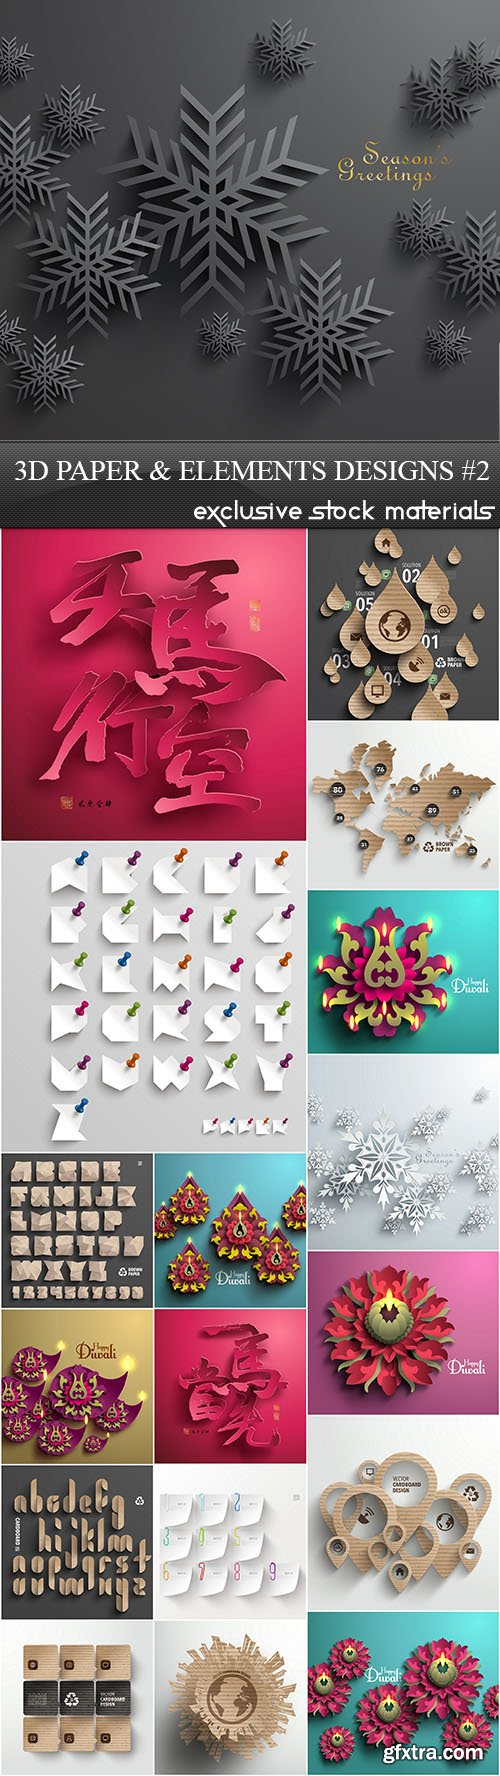 3D Paper and Elements of Design #2, 18xEPS